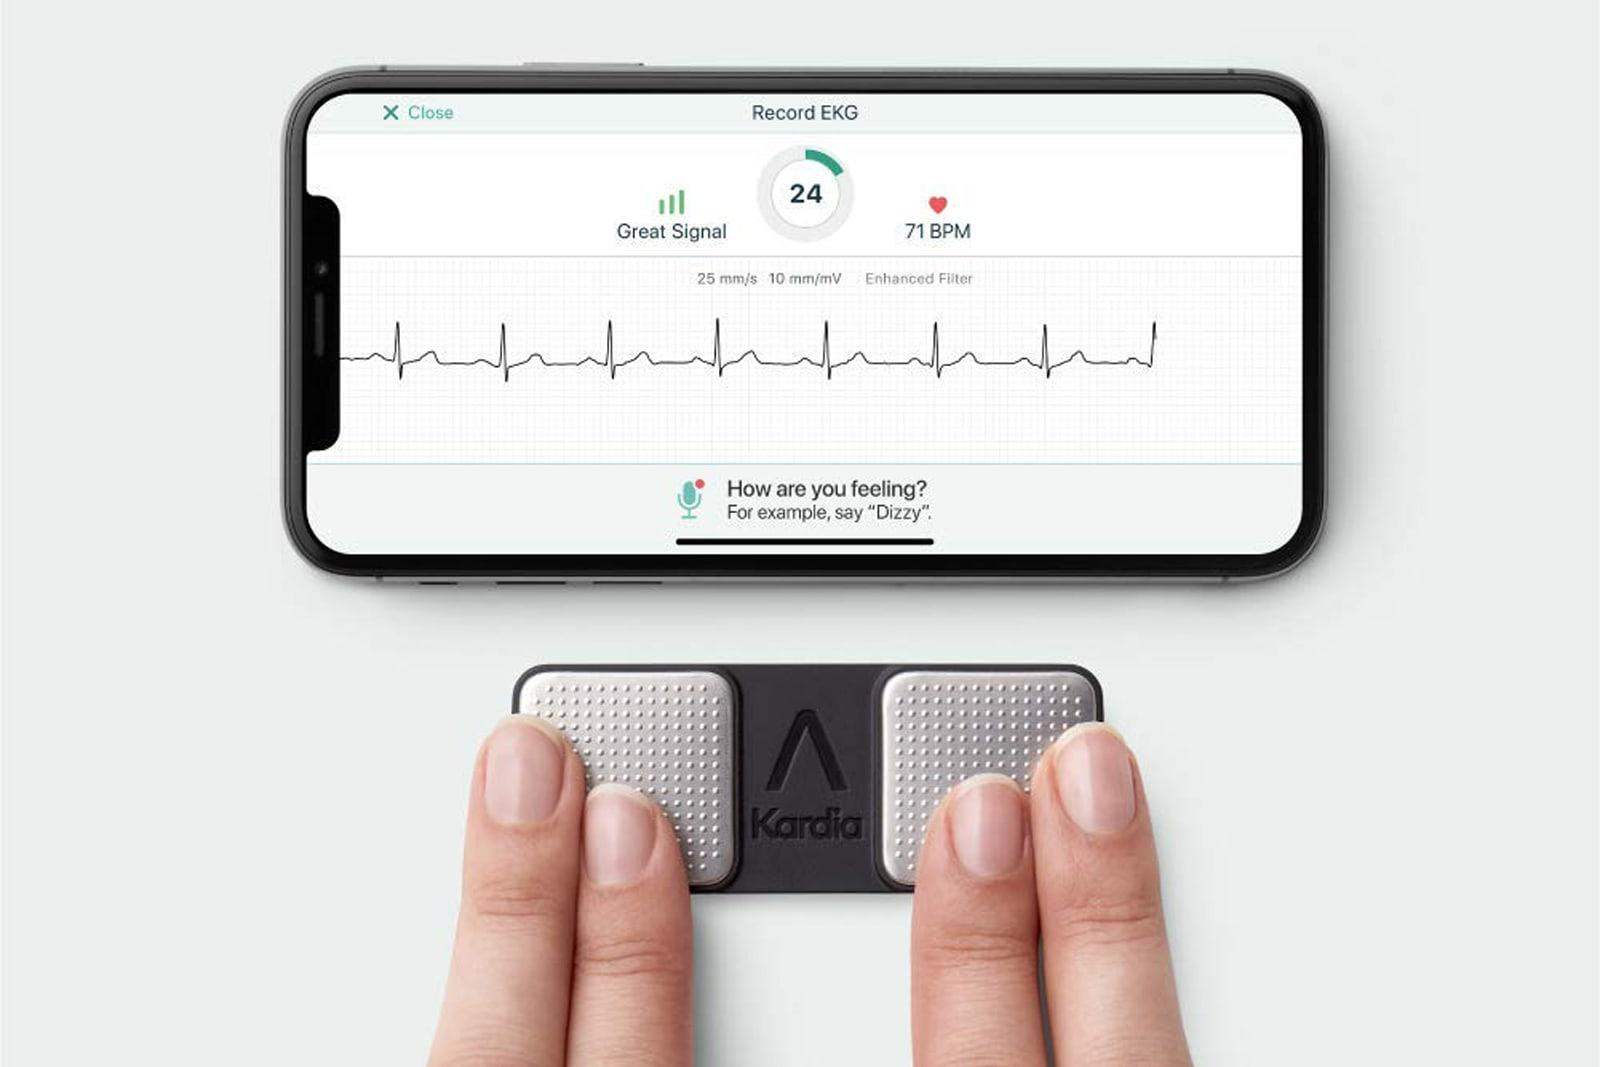 FDA clears first personal ECG device to detect three heart arrhythmias | Engadget